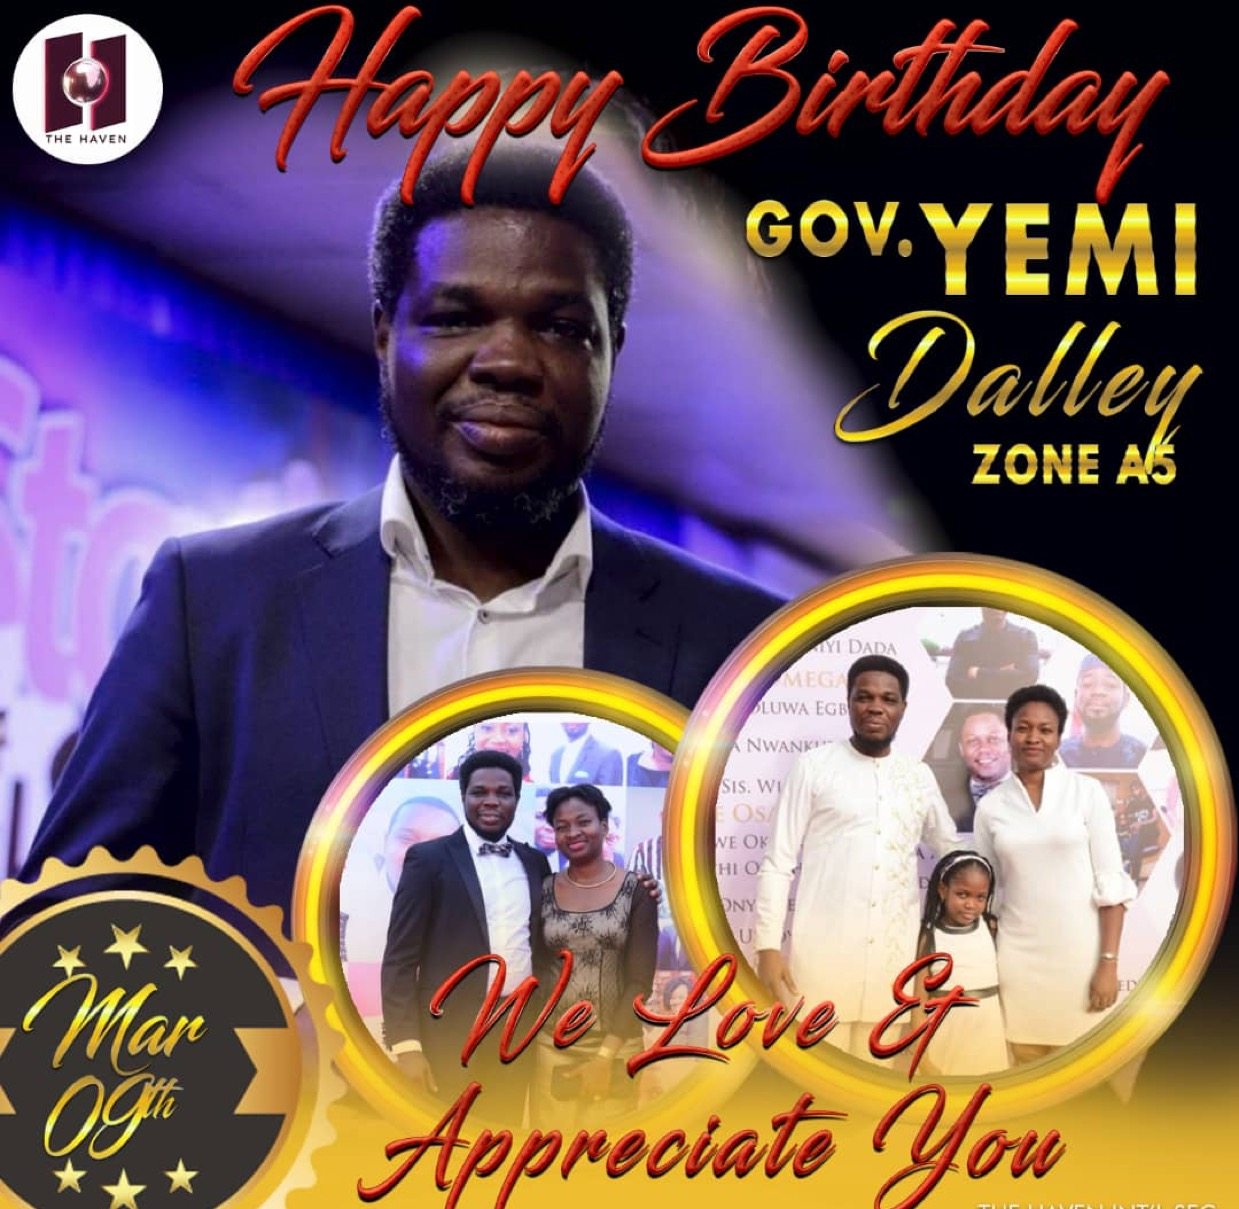 Happy birthday Esteemed Governor Yemi